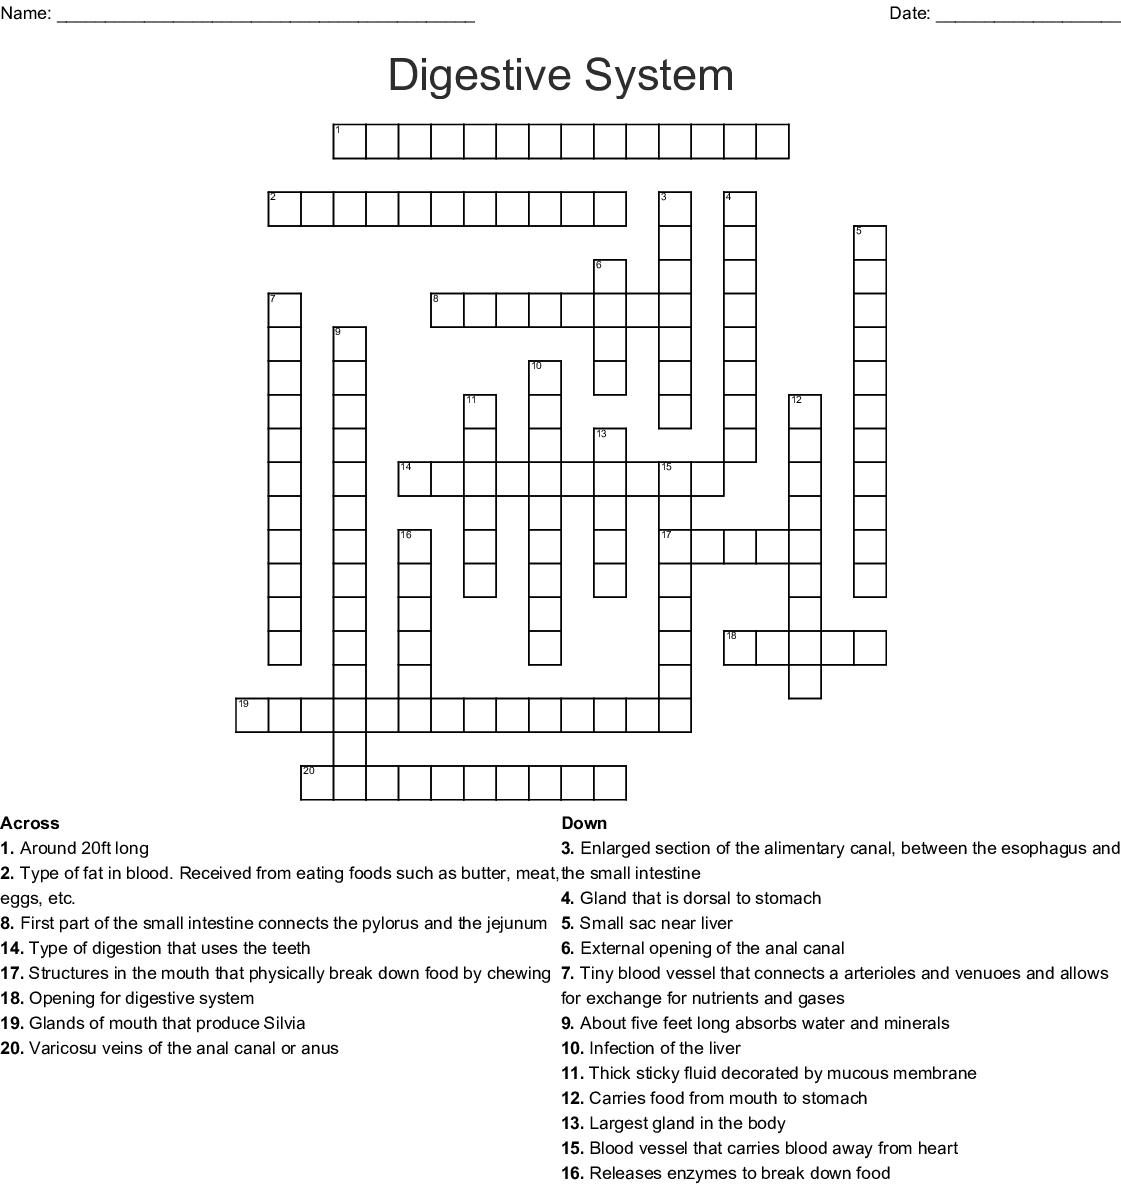 Proteins That Aid Digestion Crossword Clue